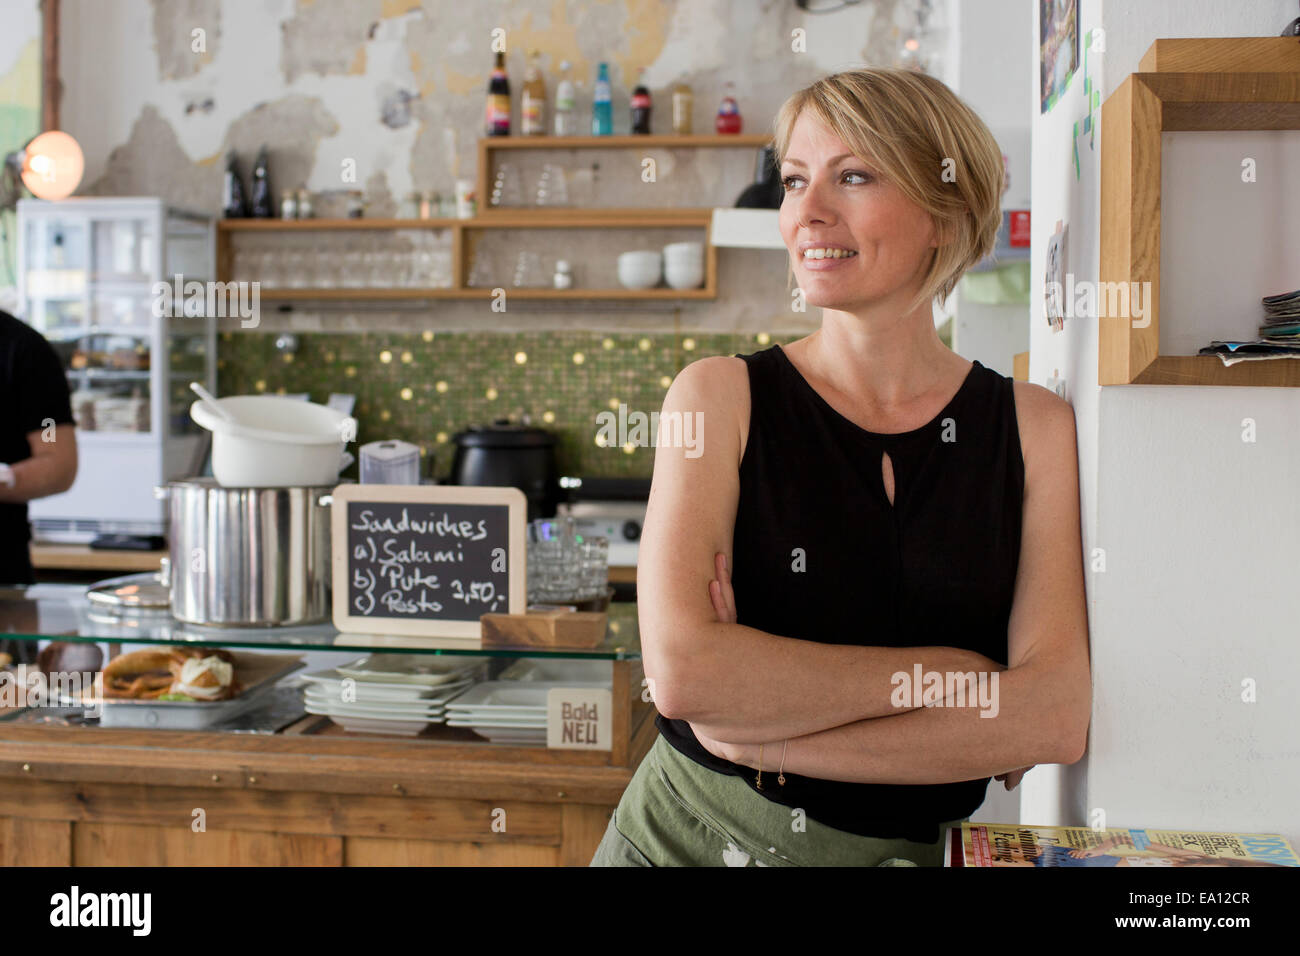 Mid adult woman in cafe Photo Stock